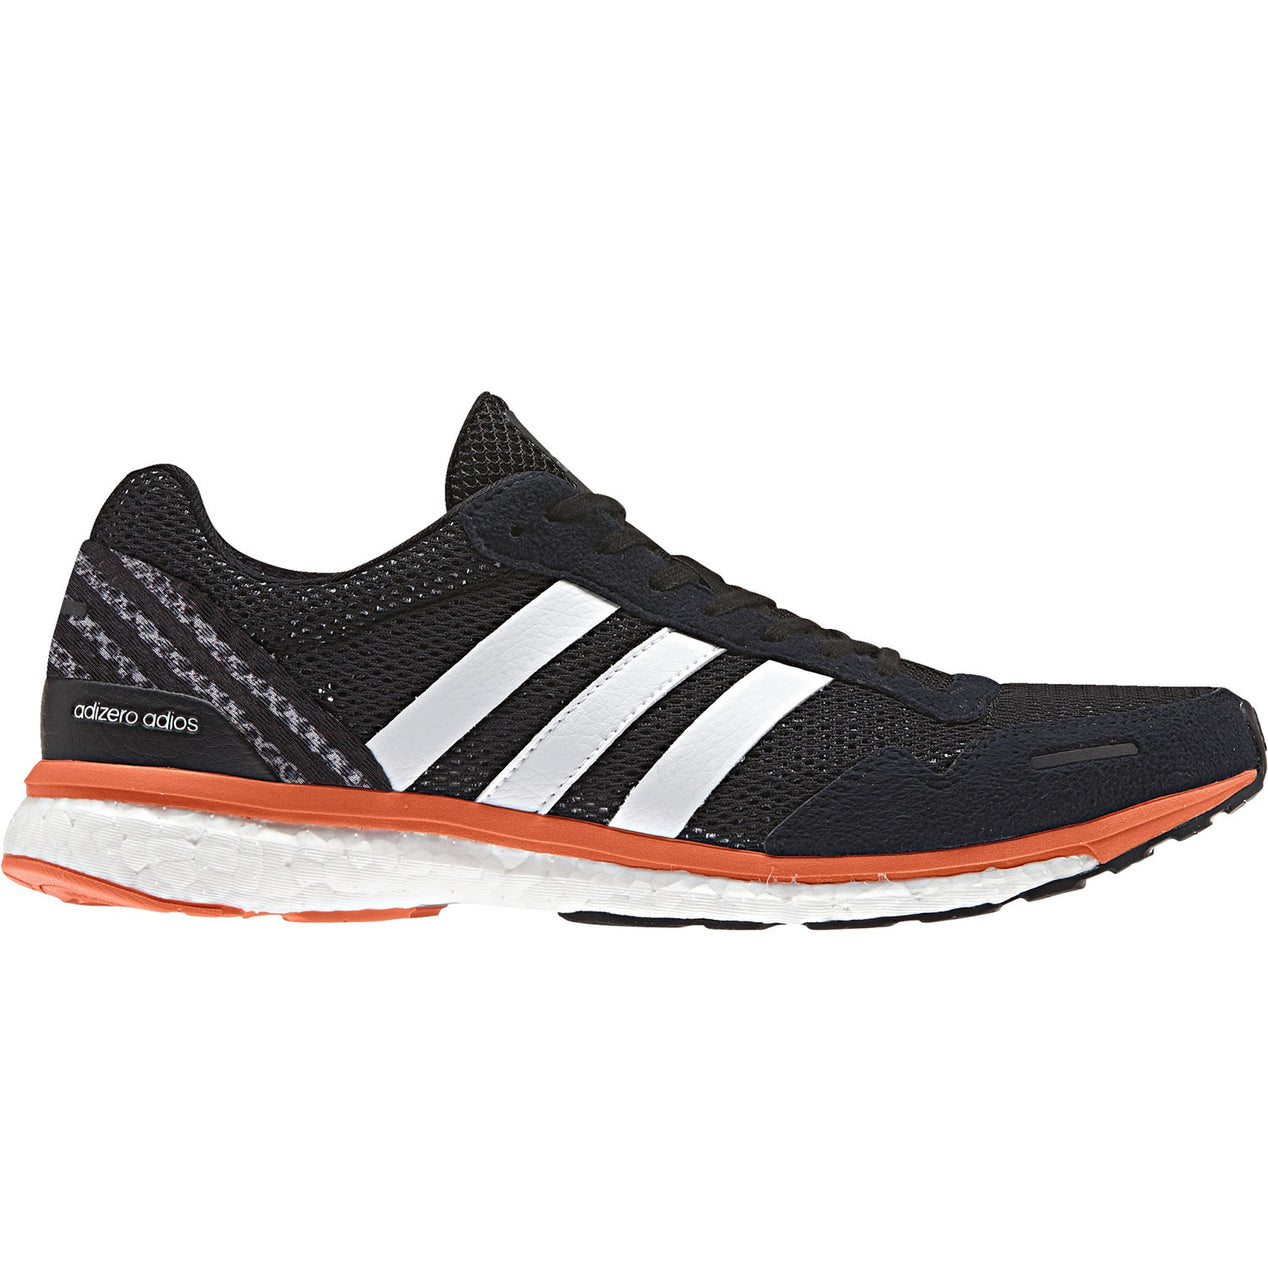 c38e4df5482 Adidas Men s Adizero Adios 3 Running Shoes